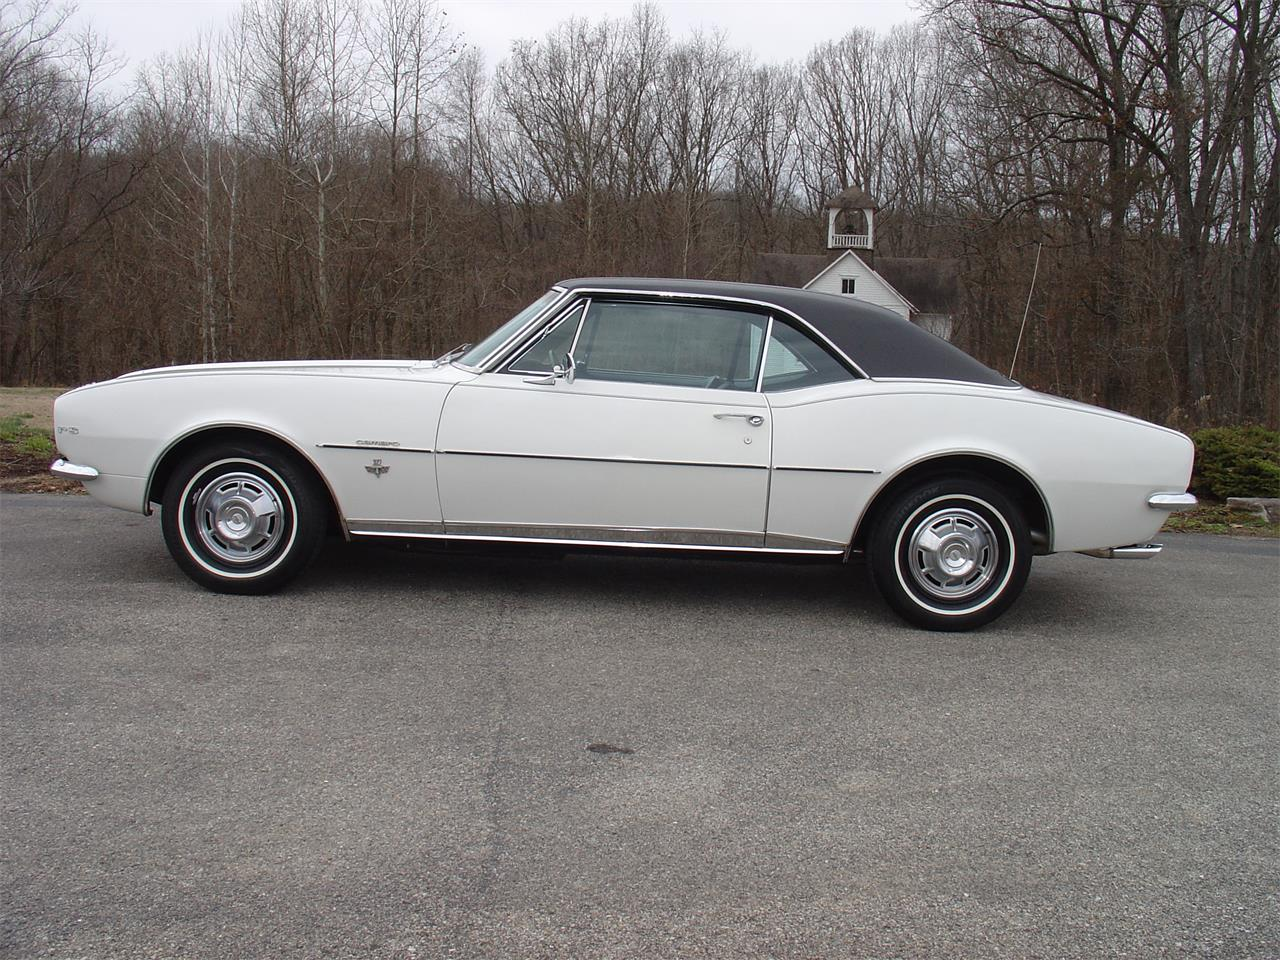 Large Picture of '67 Chevrolet Camaro RS located in SCIPIO Indiana - $28,500.00 - MYXG